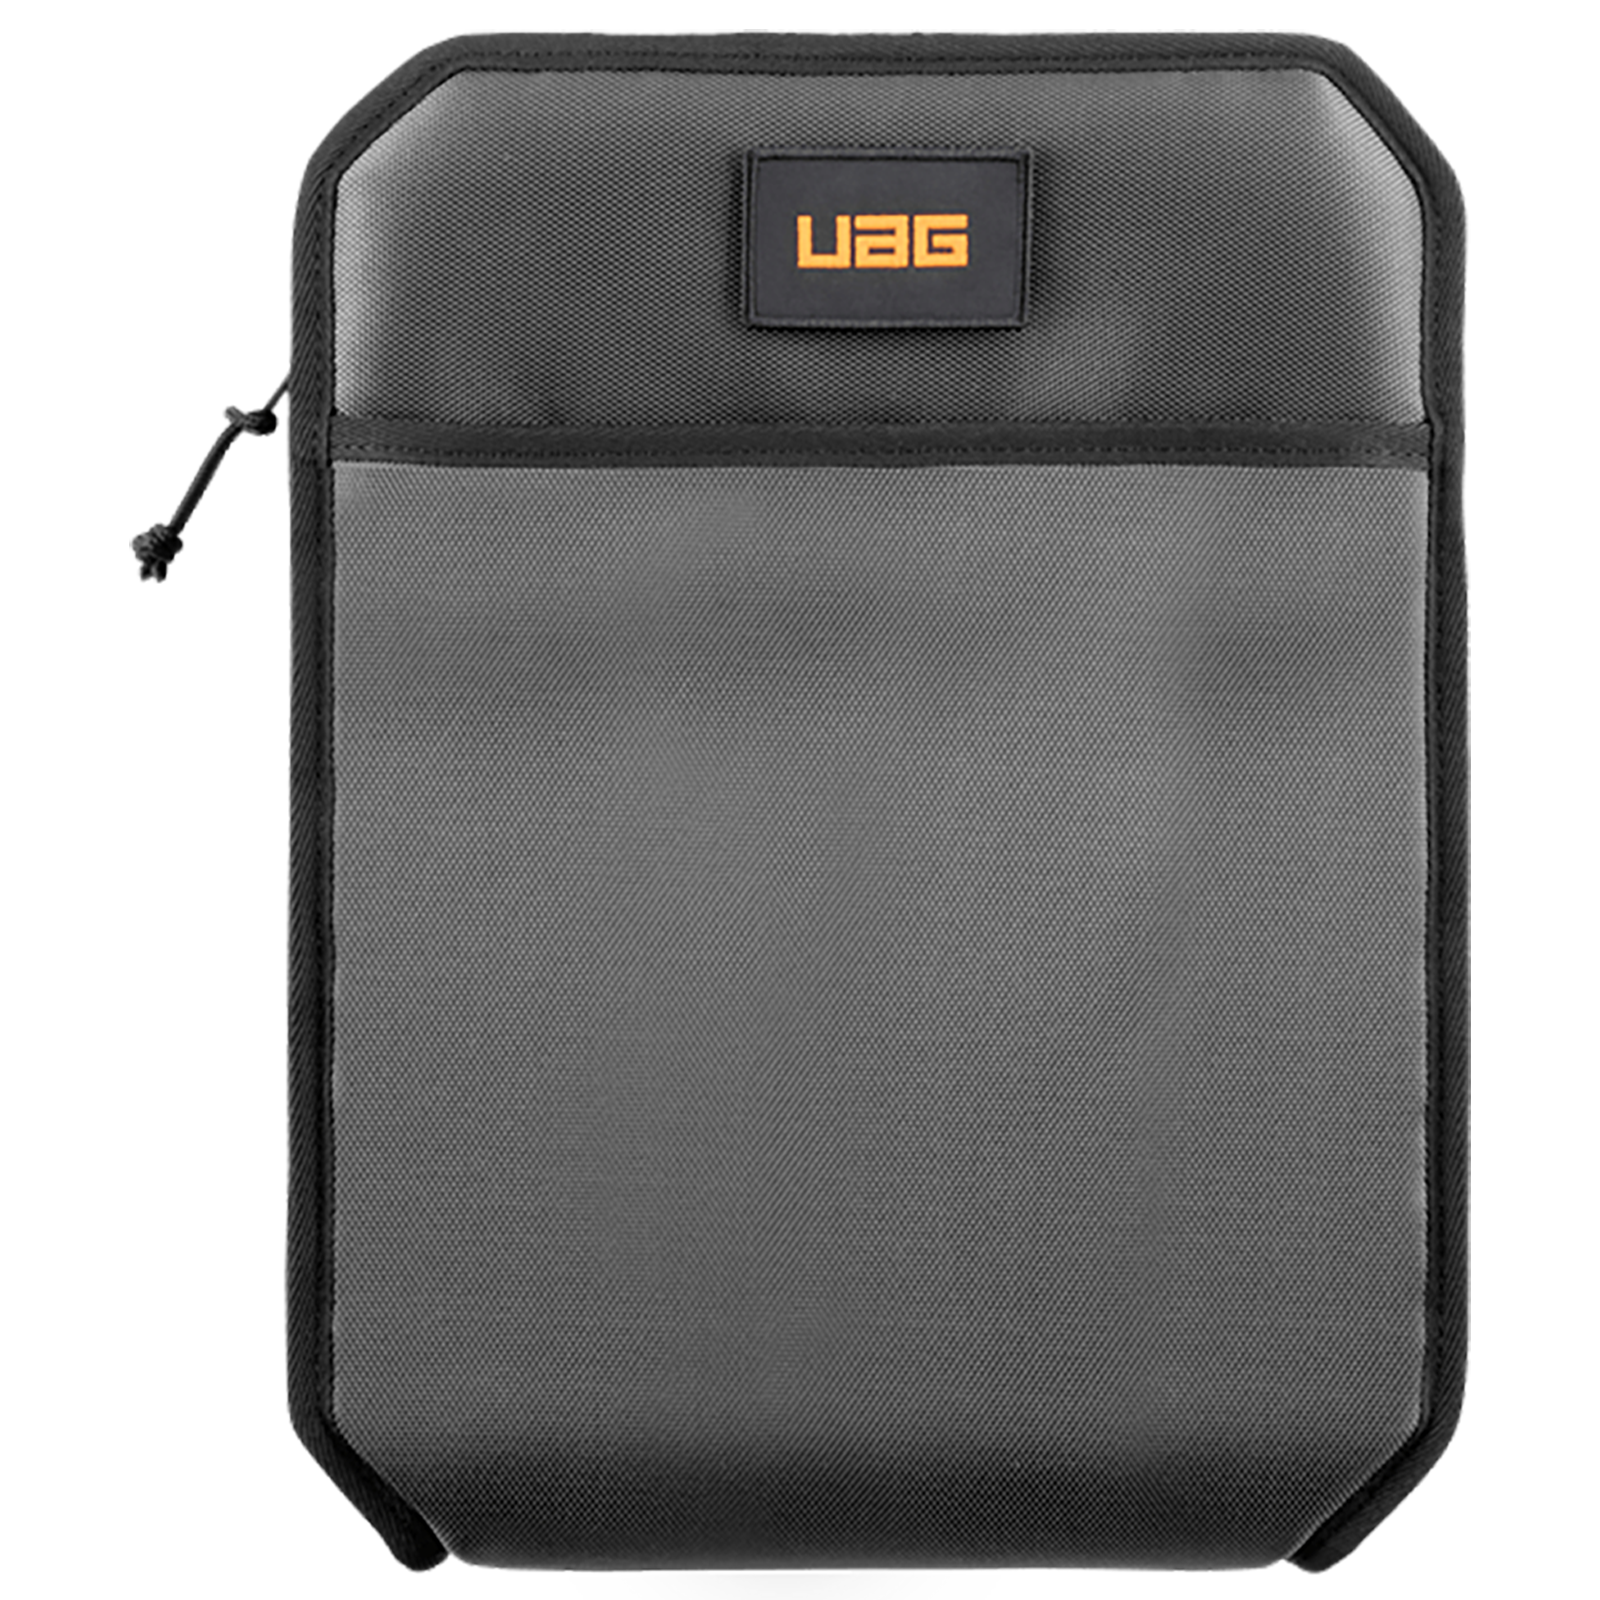 UAG Shock Sleeve Lite Polycarbonate Sleeve For Apple iPad Pro 11 Inch / iPad Air 4 10.9 Inch (MIL STD Drop-Tested Protection, UGSHOCK_IPD11P_GY, Grey)_1